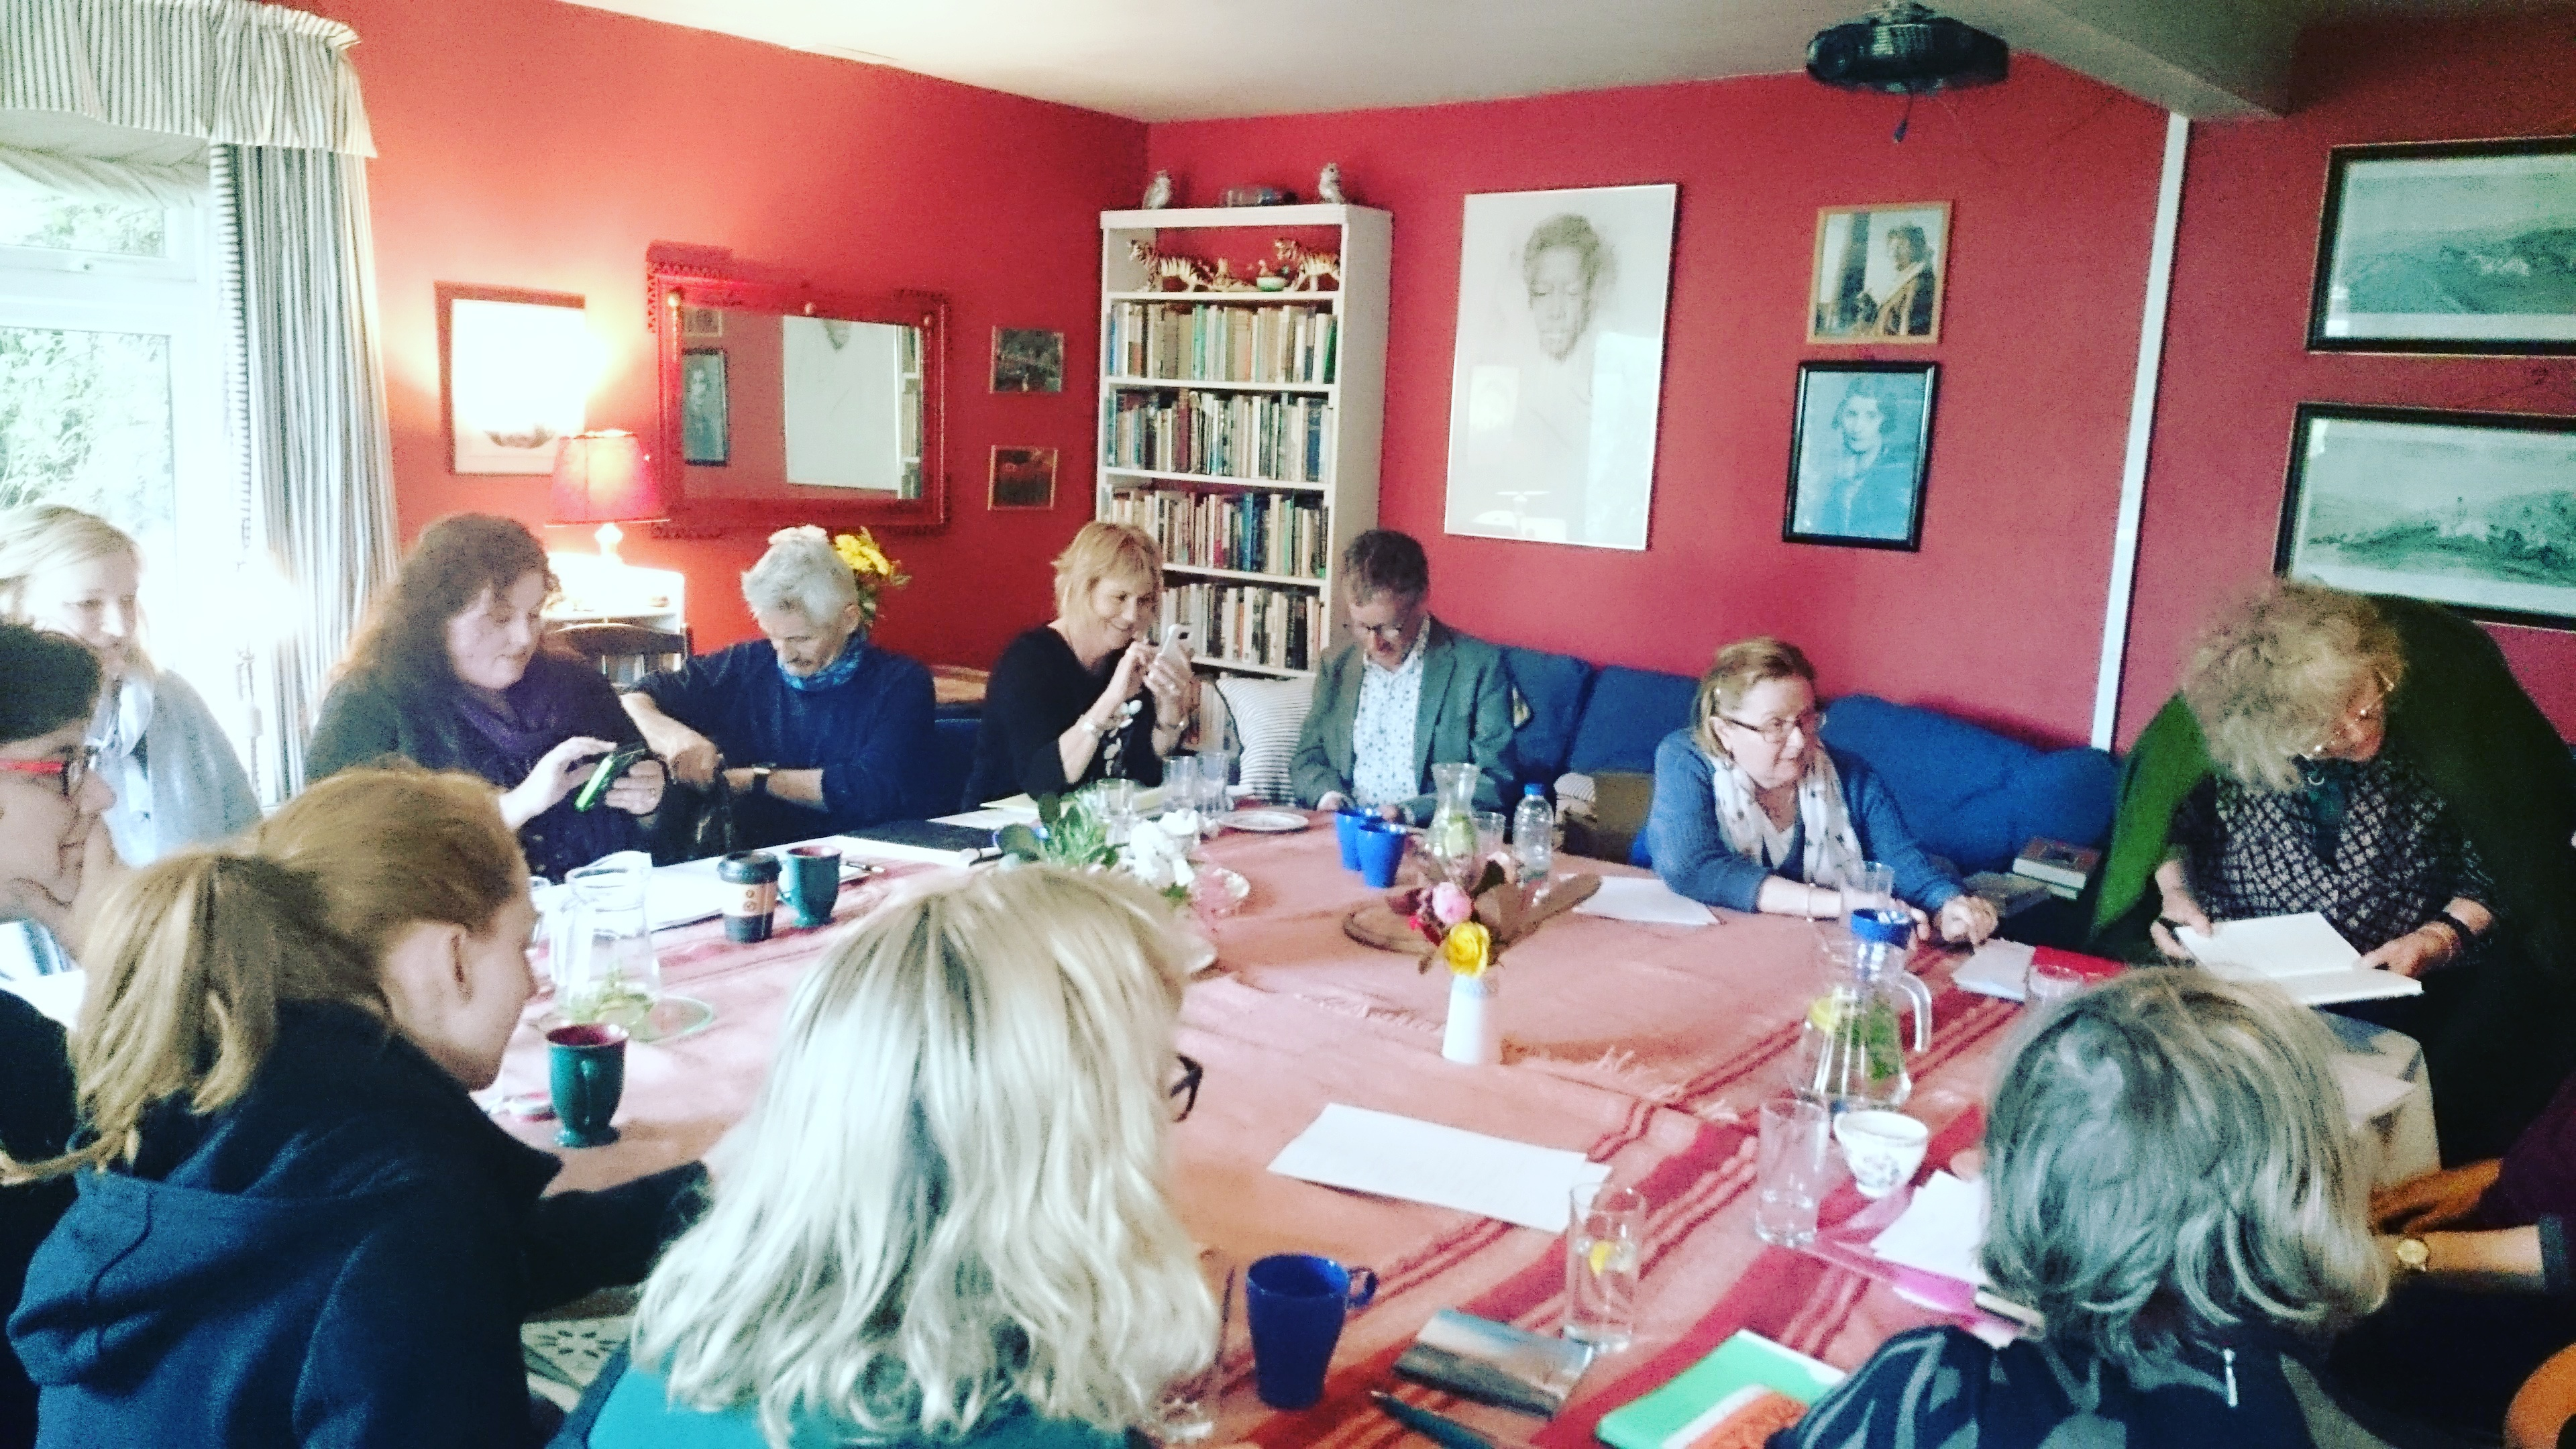 Workshop at the Molly Keane Writers' Retreat